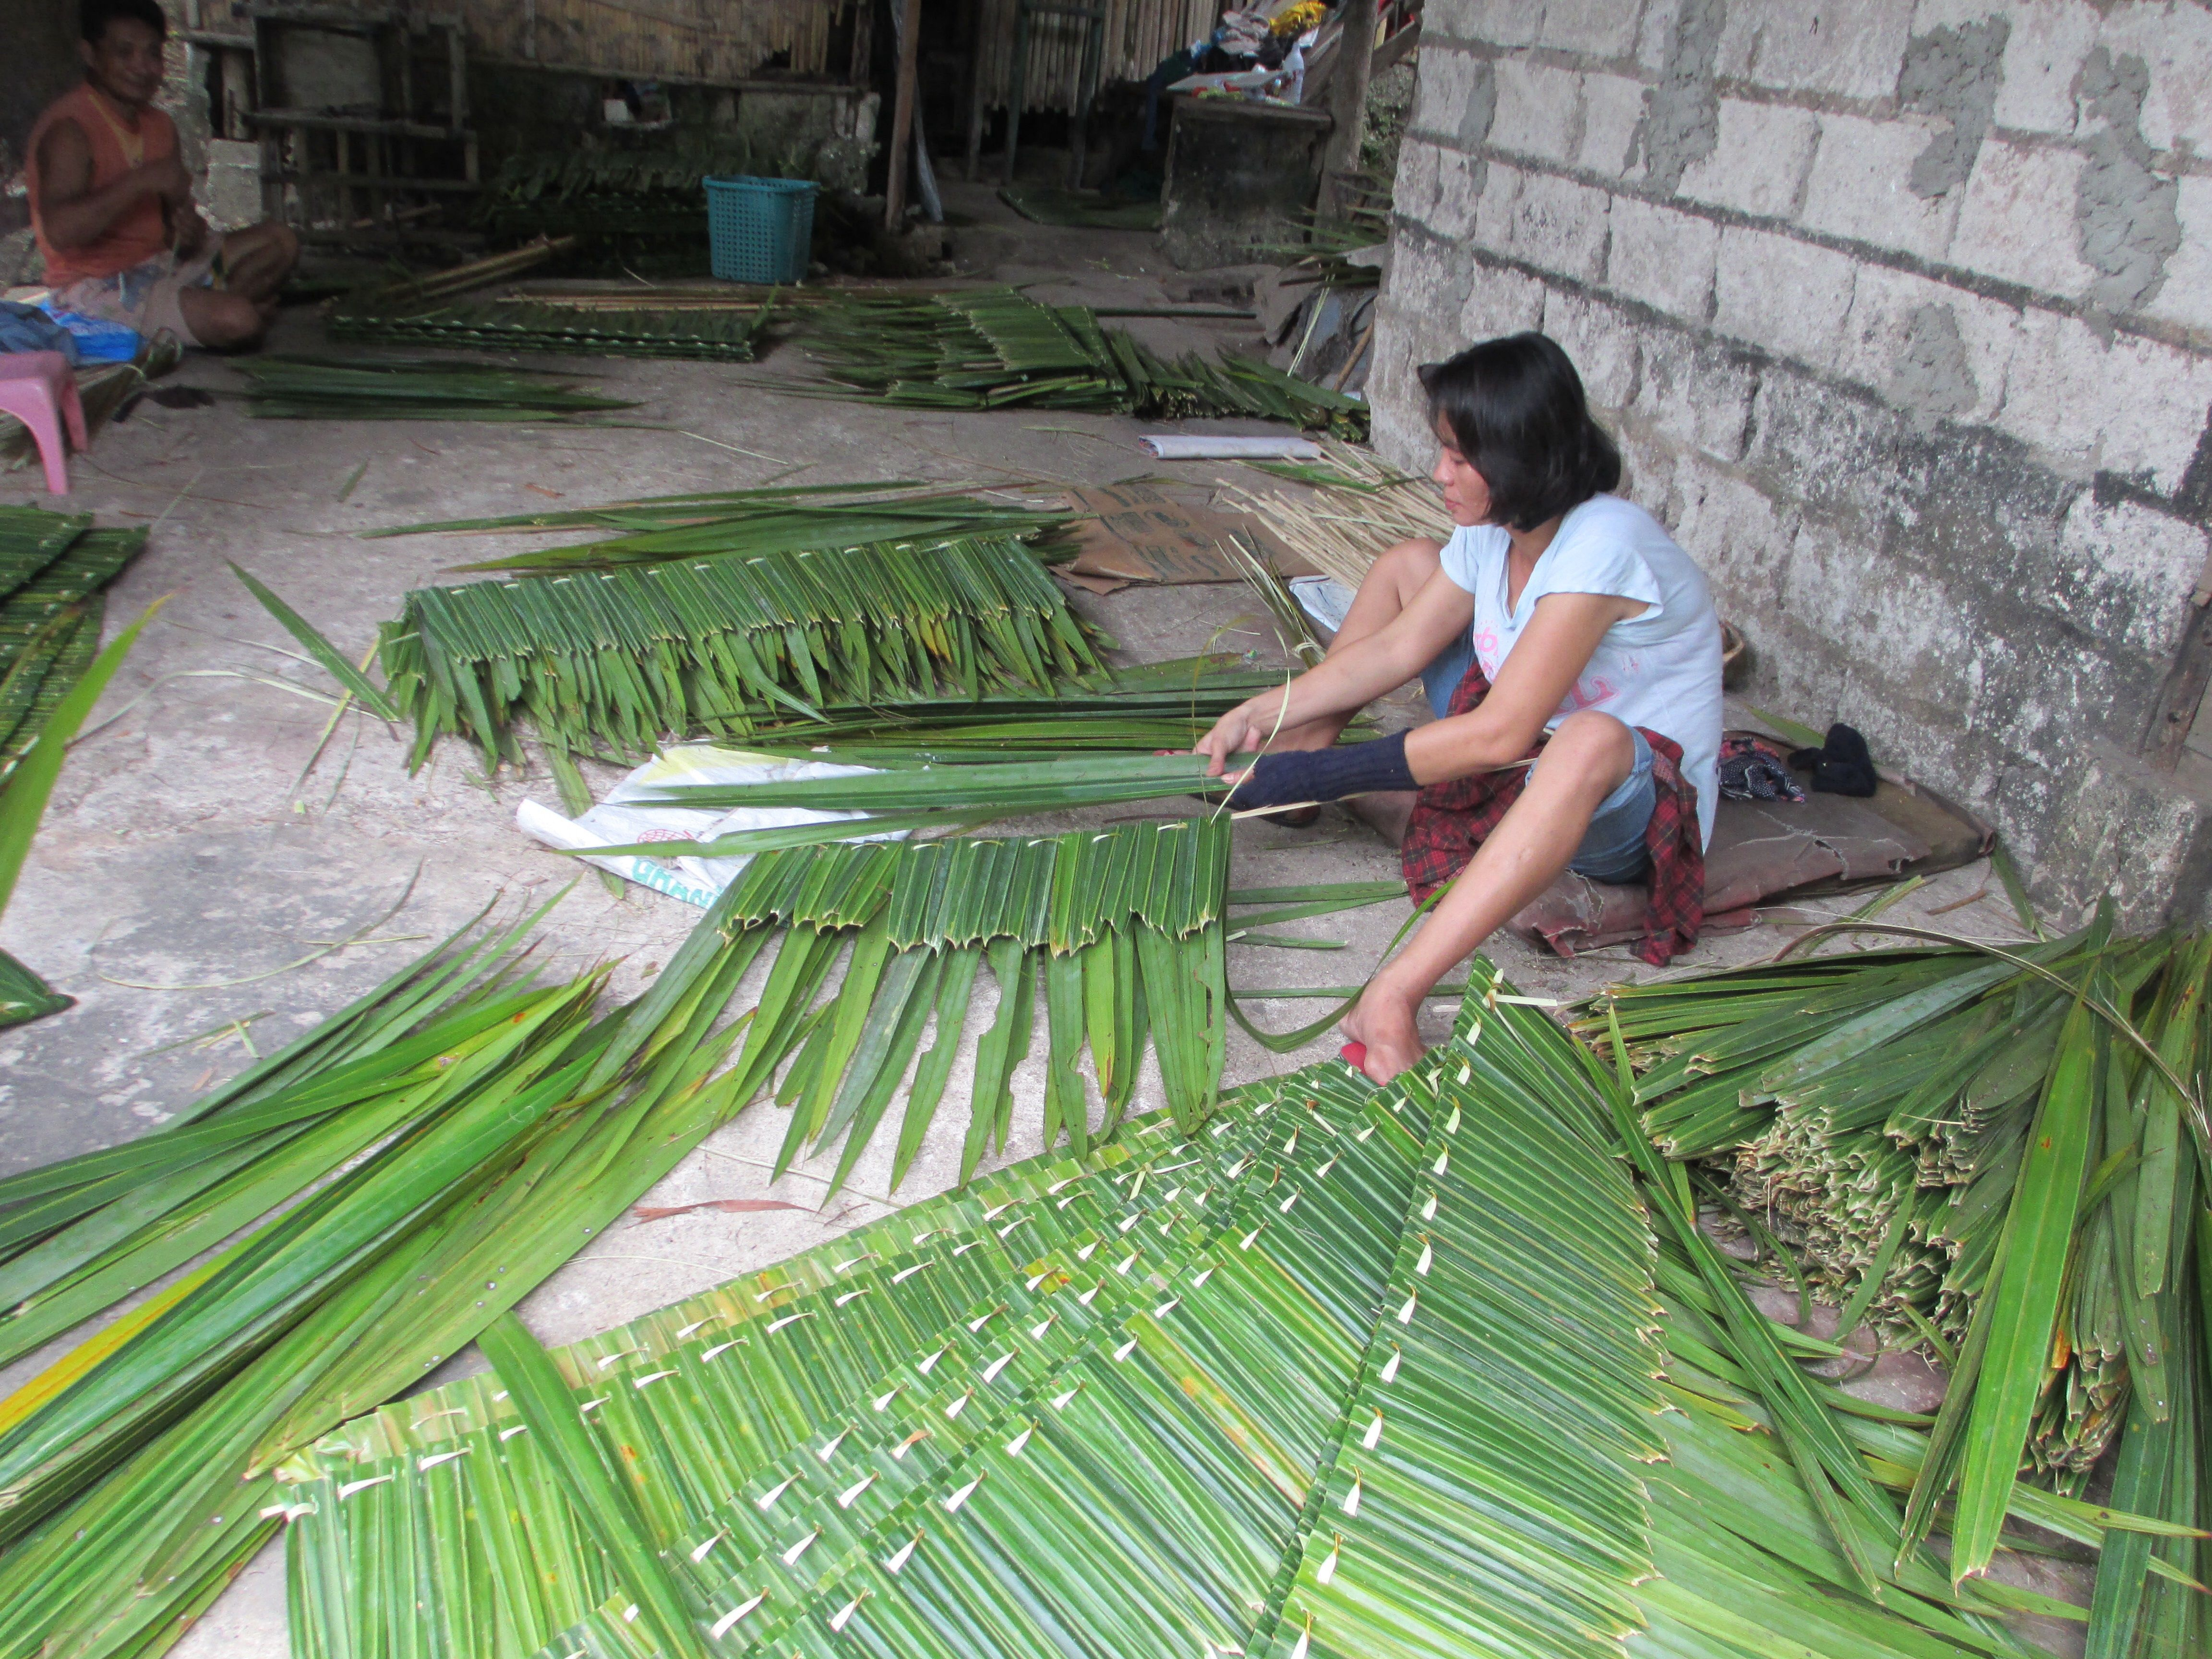 Nipa Palm Leaf Roof Cladding Roof Cladding Roof Construction Palm Fronds